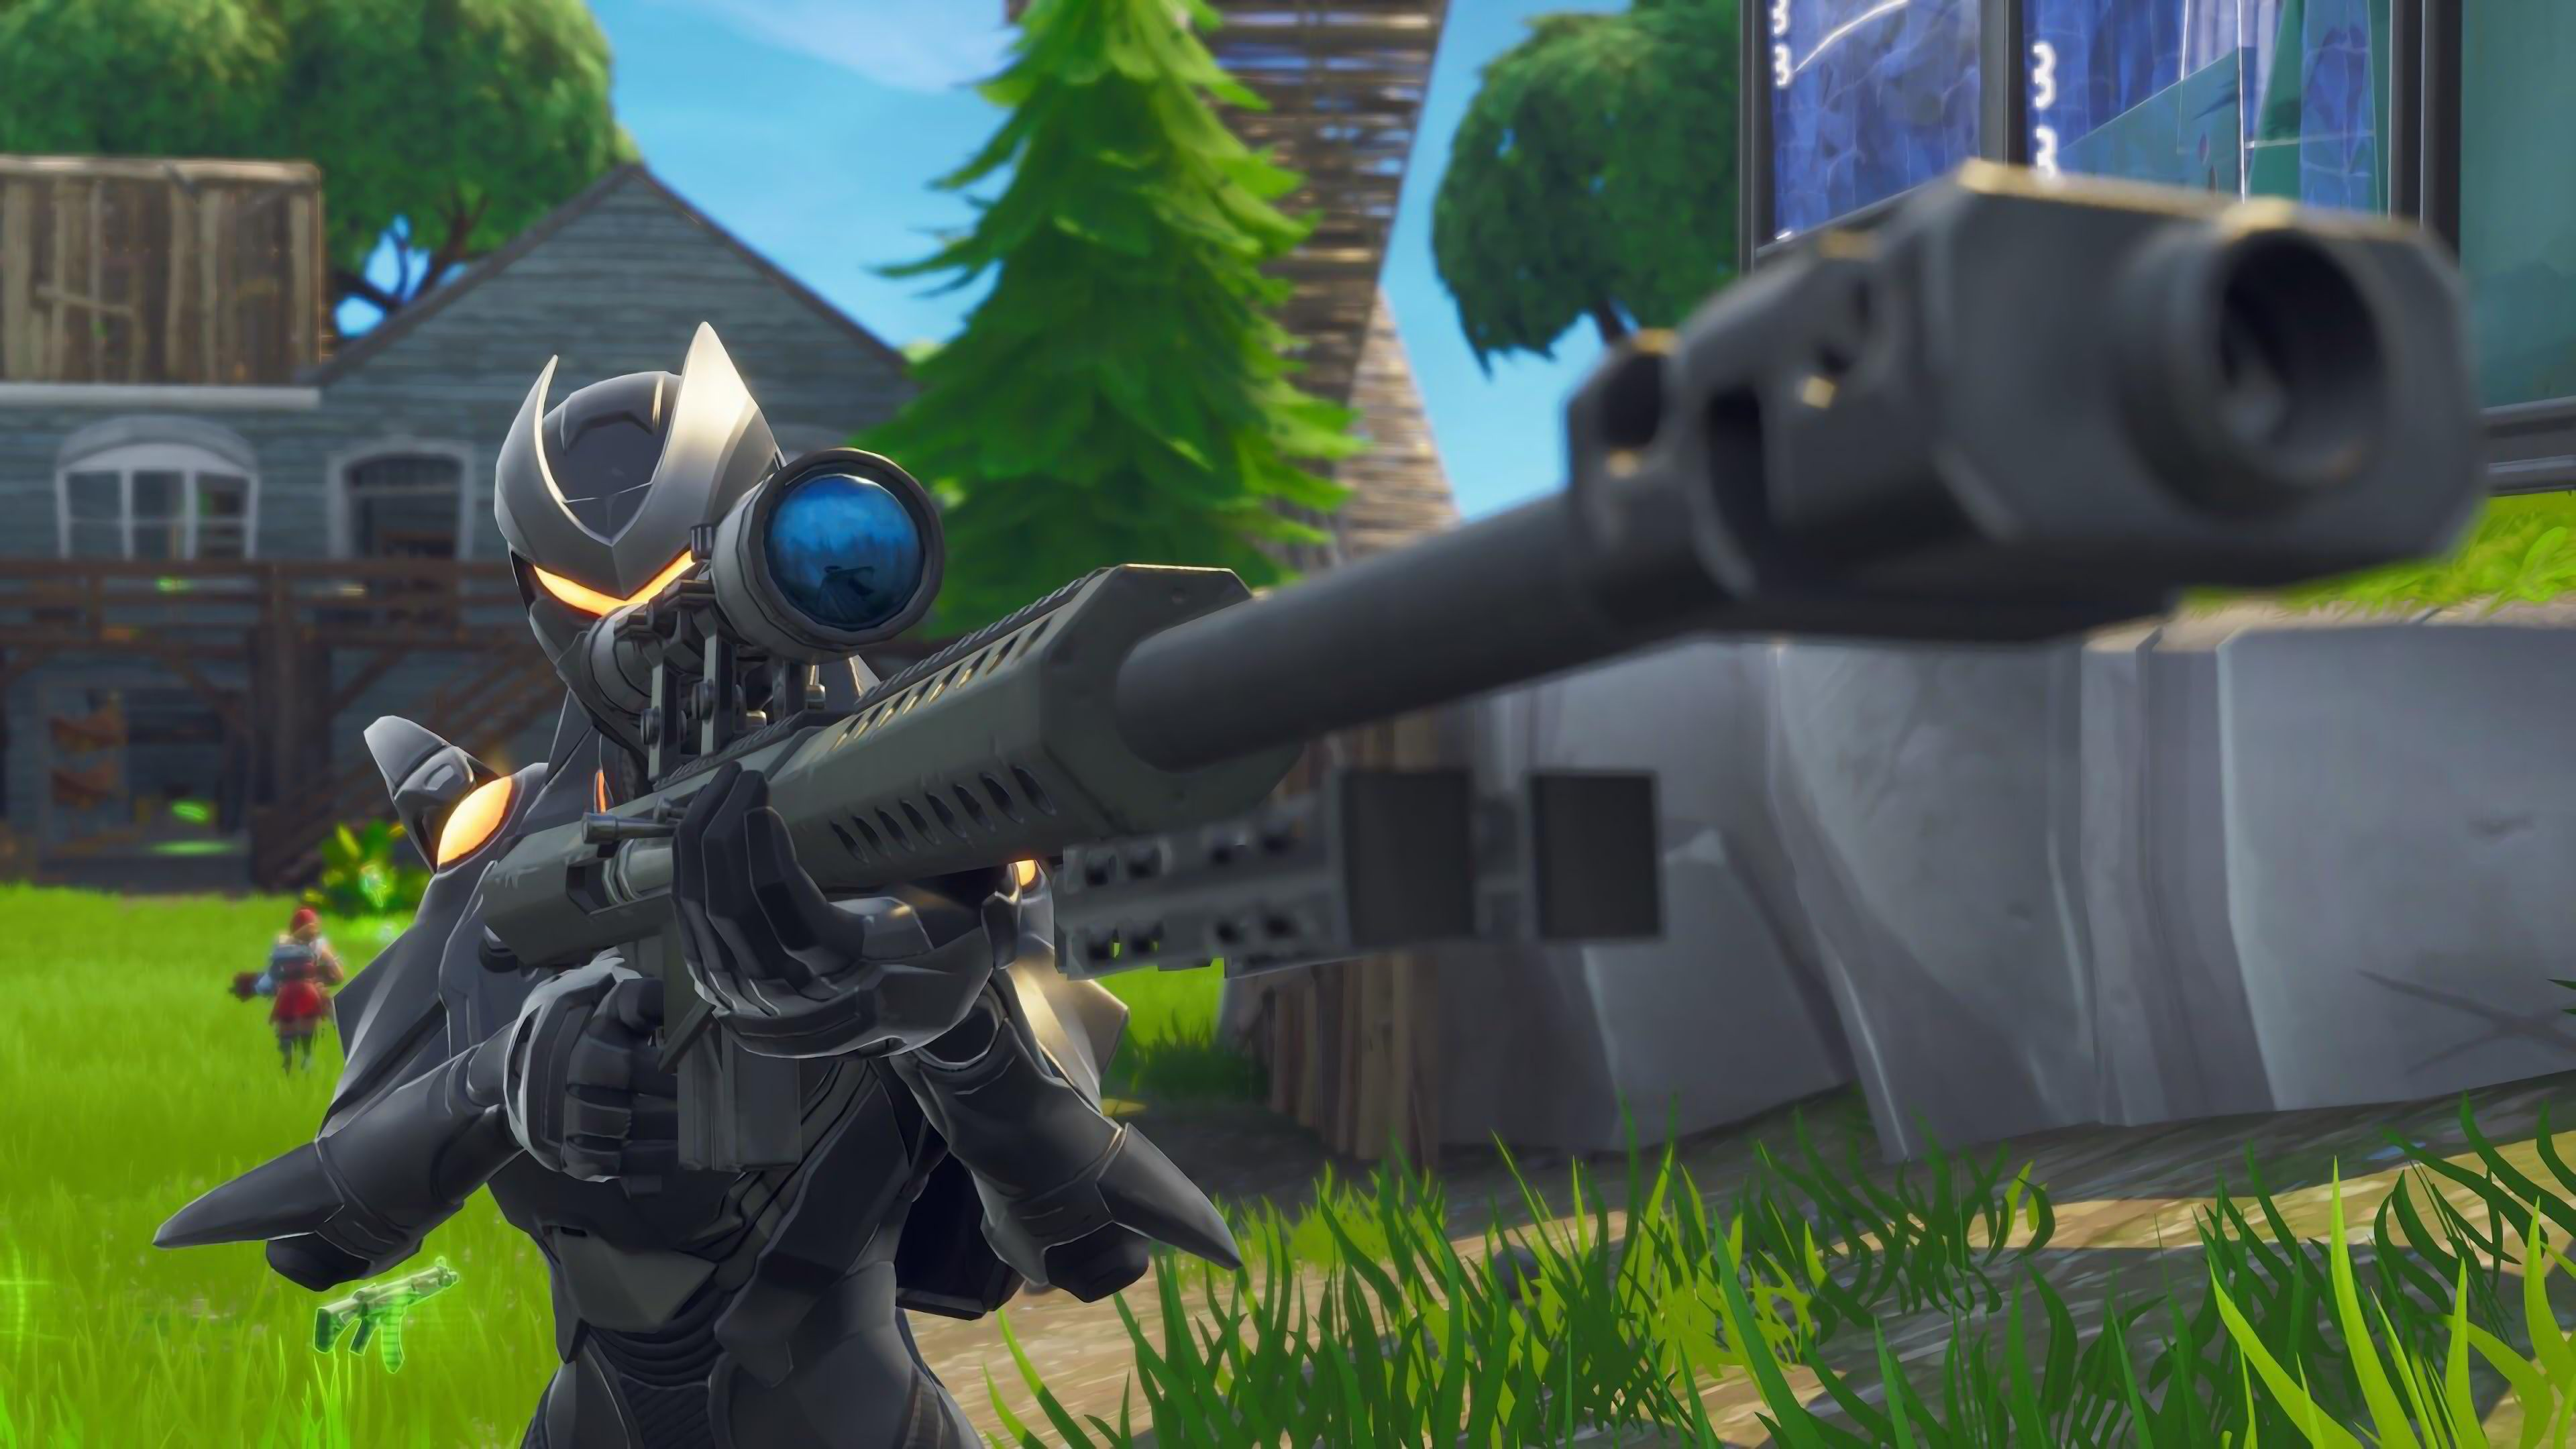 Oblivion Fortnite Season 6 4k Ps Games Wallpapers Hd Wallpapers Games Wallpapers Fortnite Wallpapers Fortni Gaming Wallpapers 4k Gaming Wallpaper Wallpaper